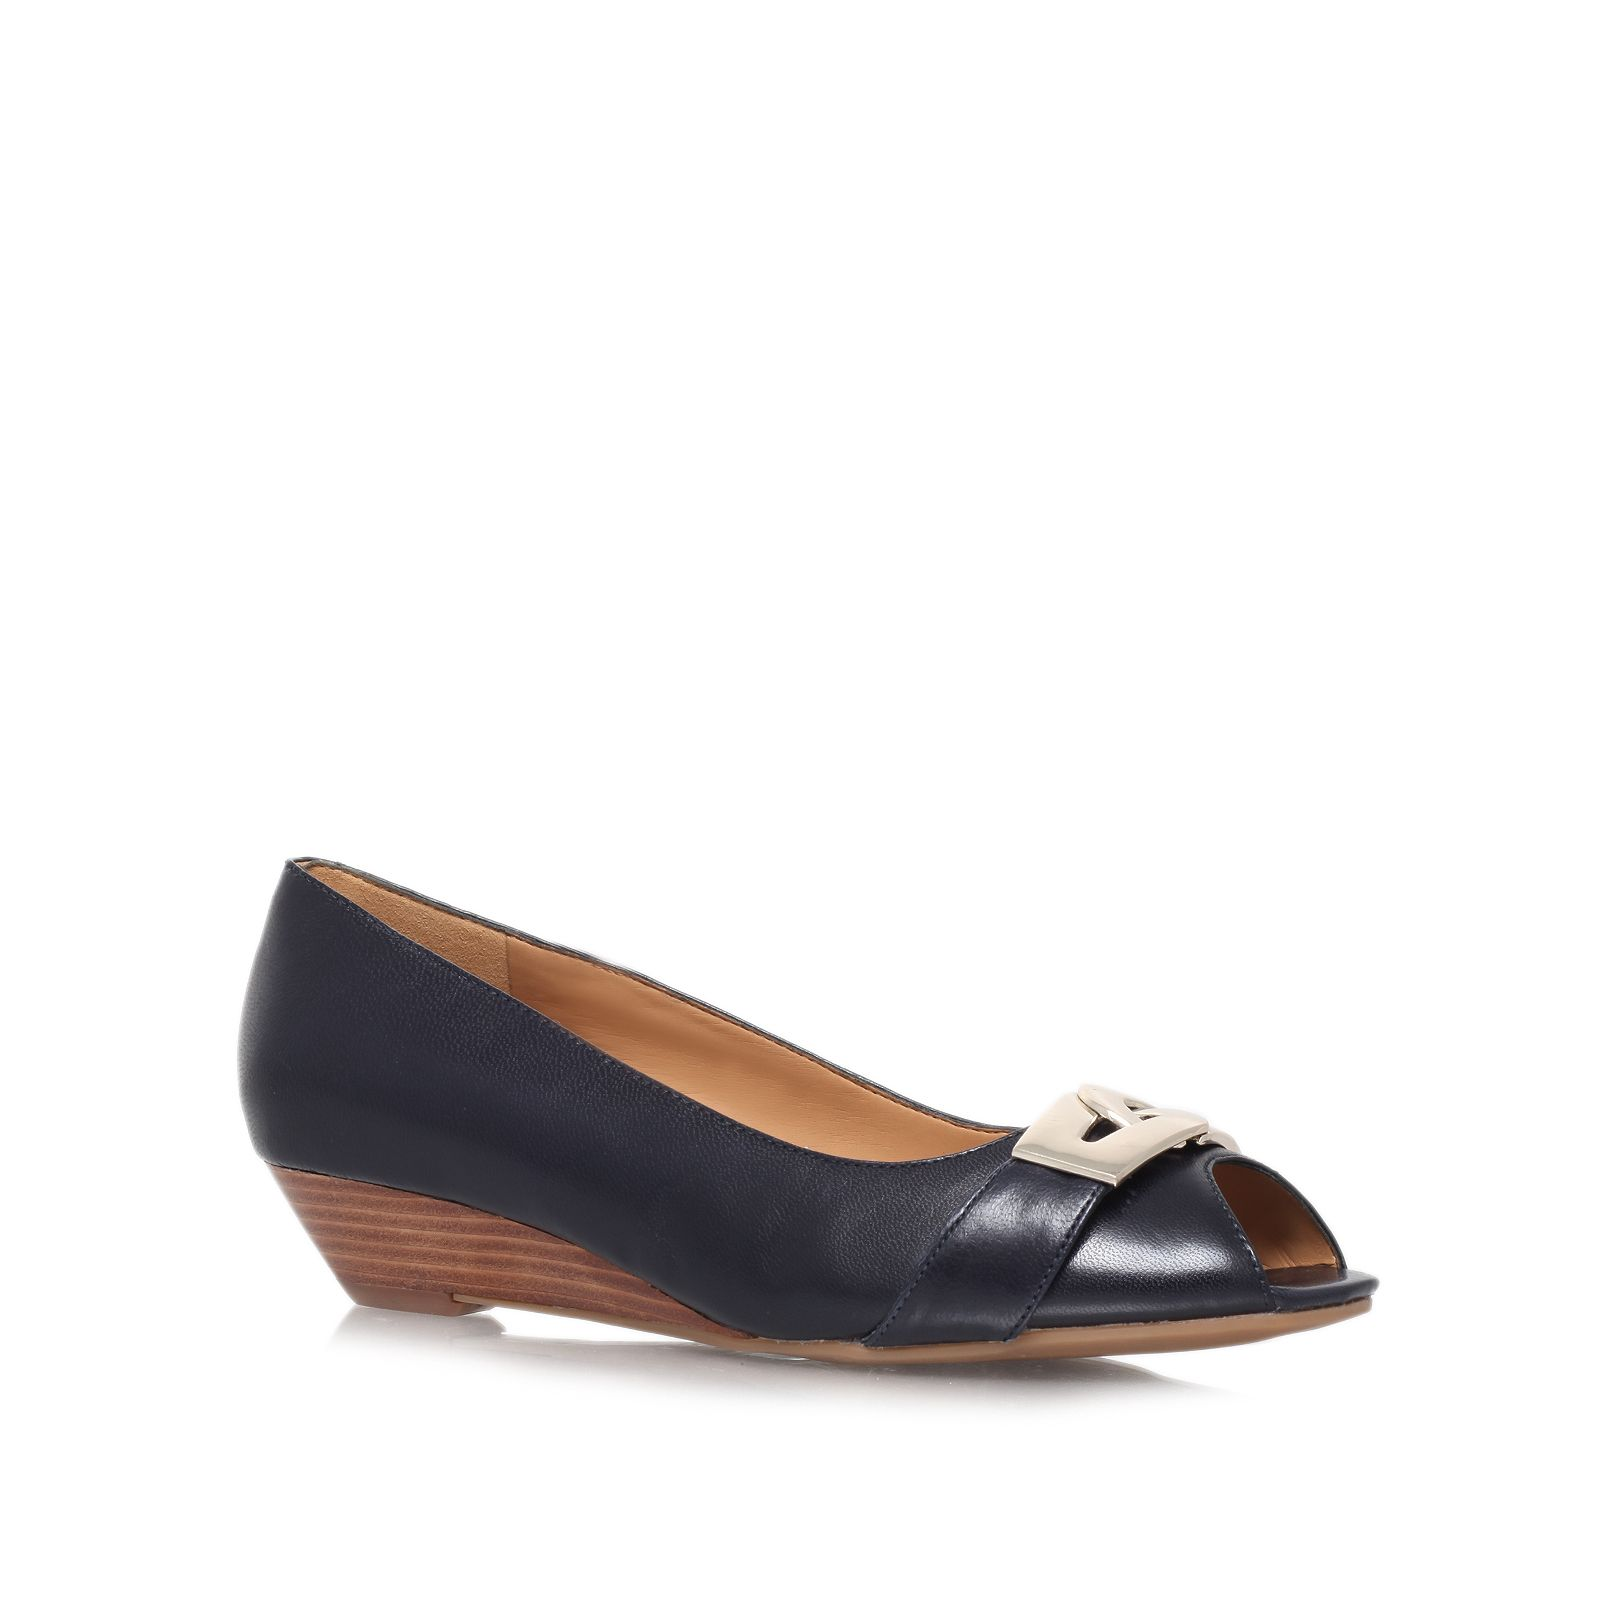 Maximilla low heeled court shoes